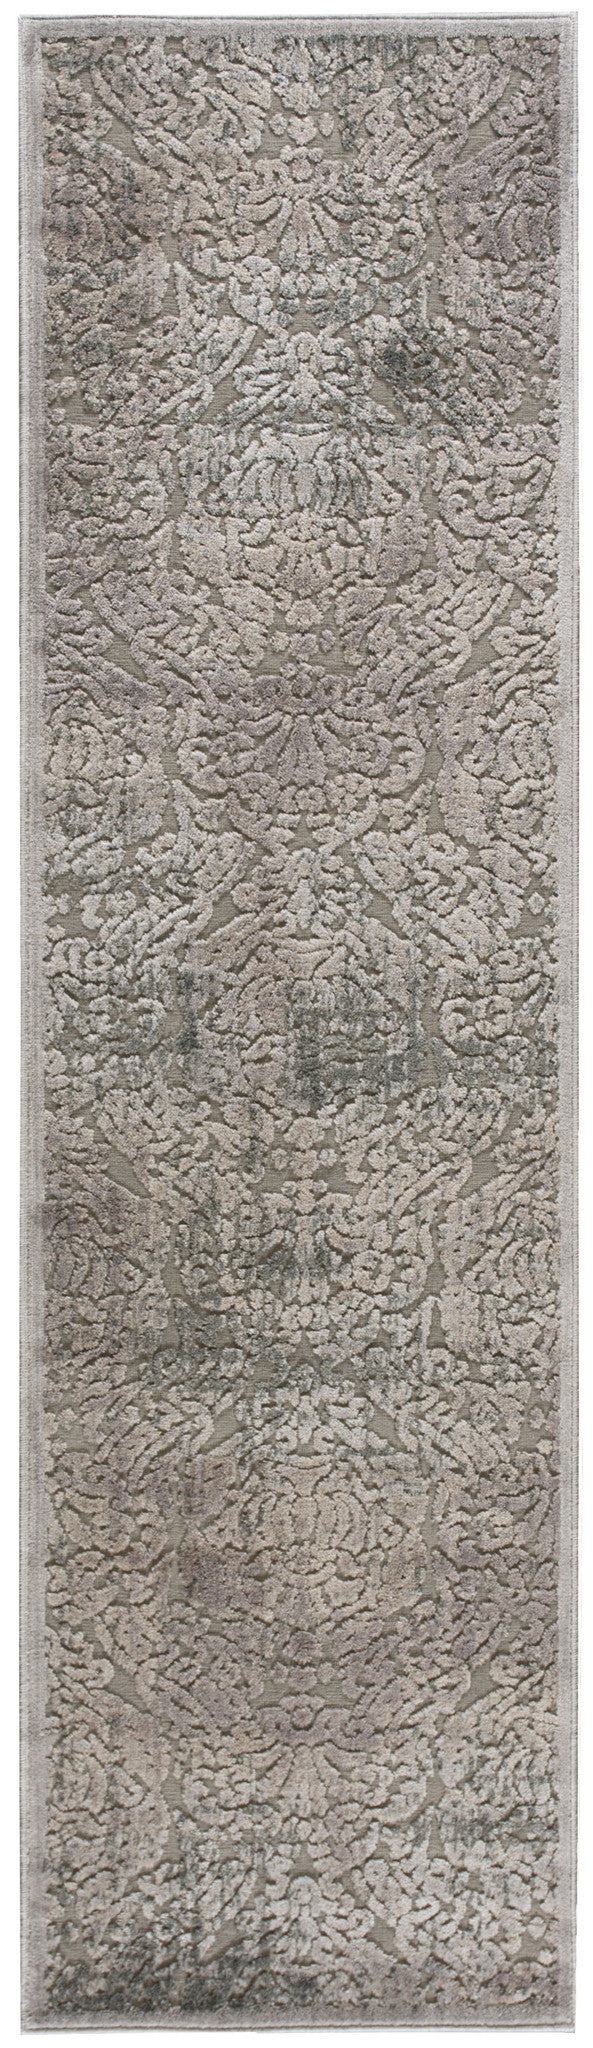 Nourison Graphic Illusions Grey Area Rug GIL09 GRY